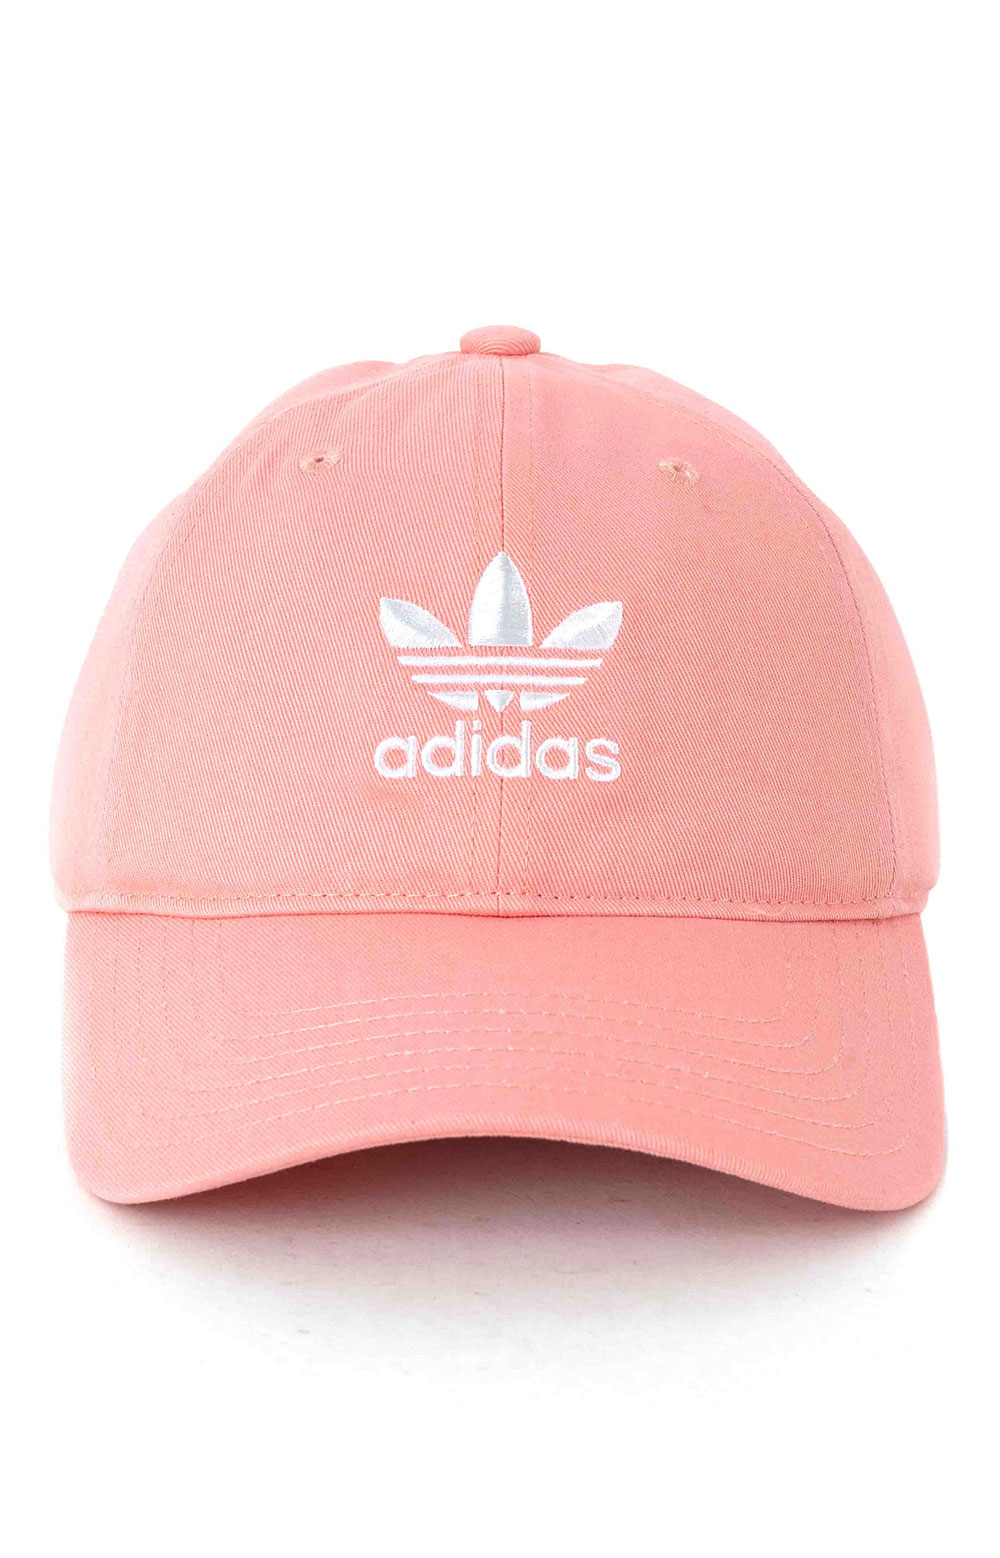 Originals Relaxed Strap-Back Hat - Glory Pink/White 2